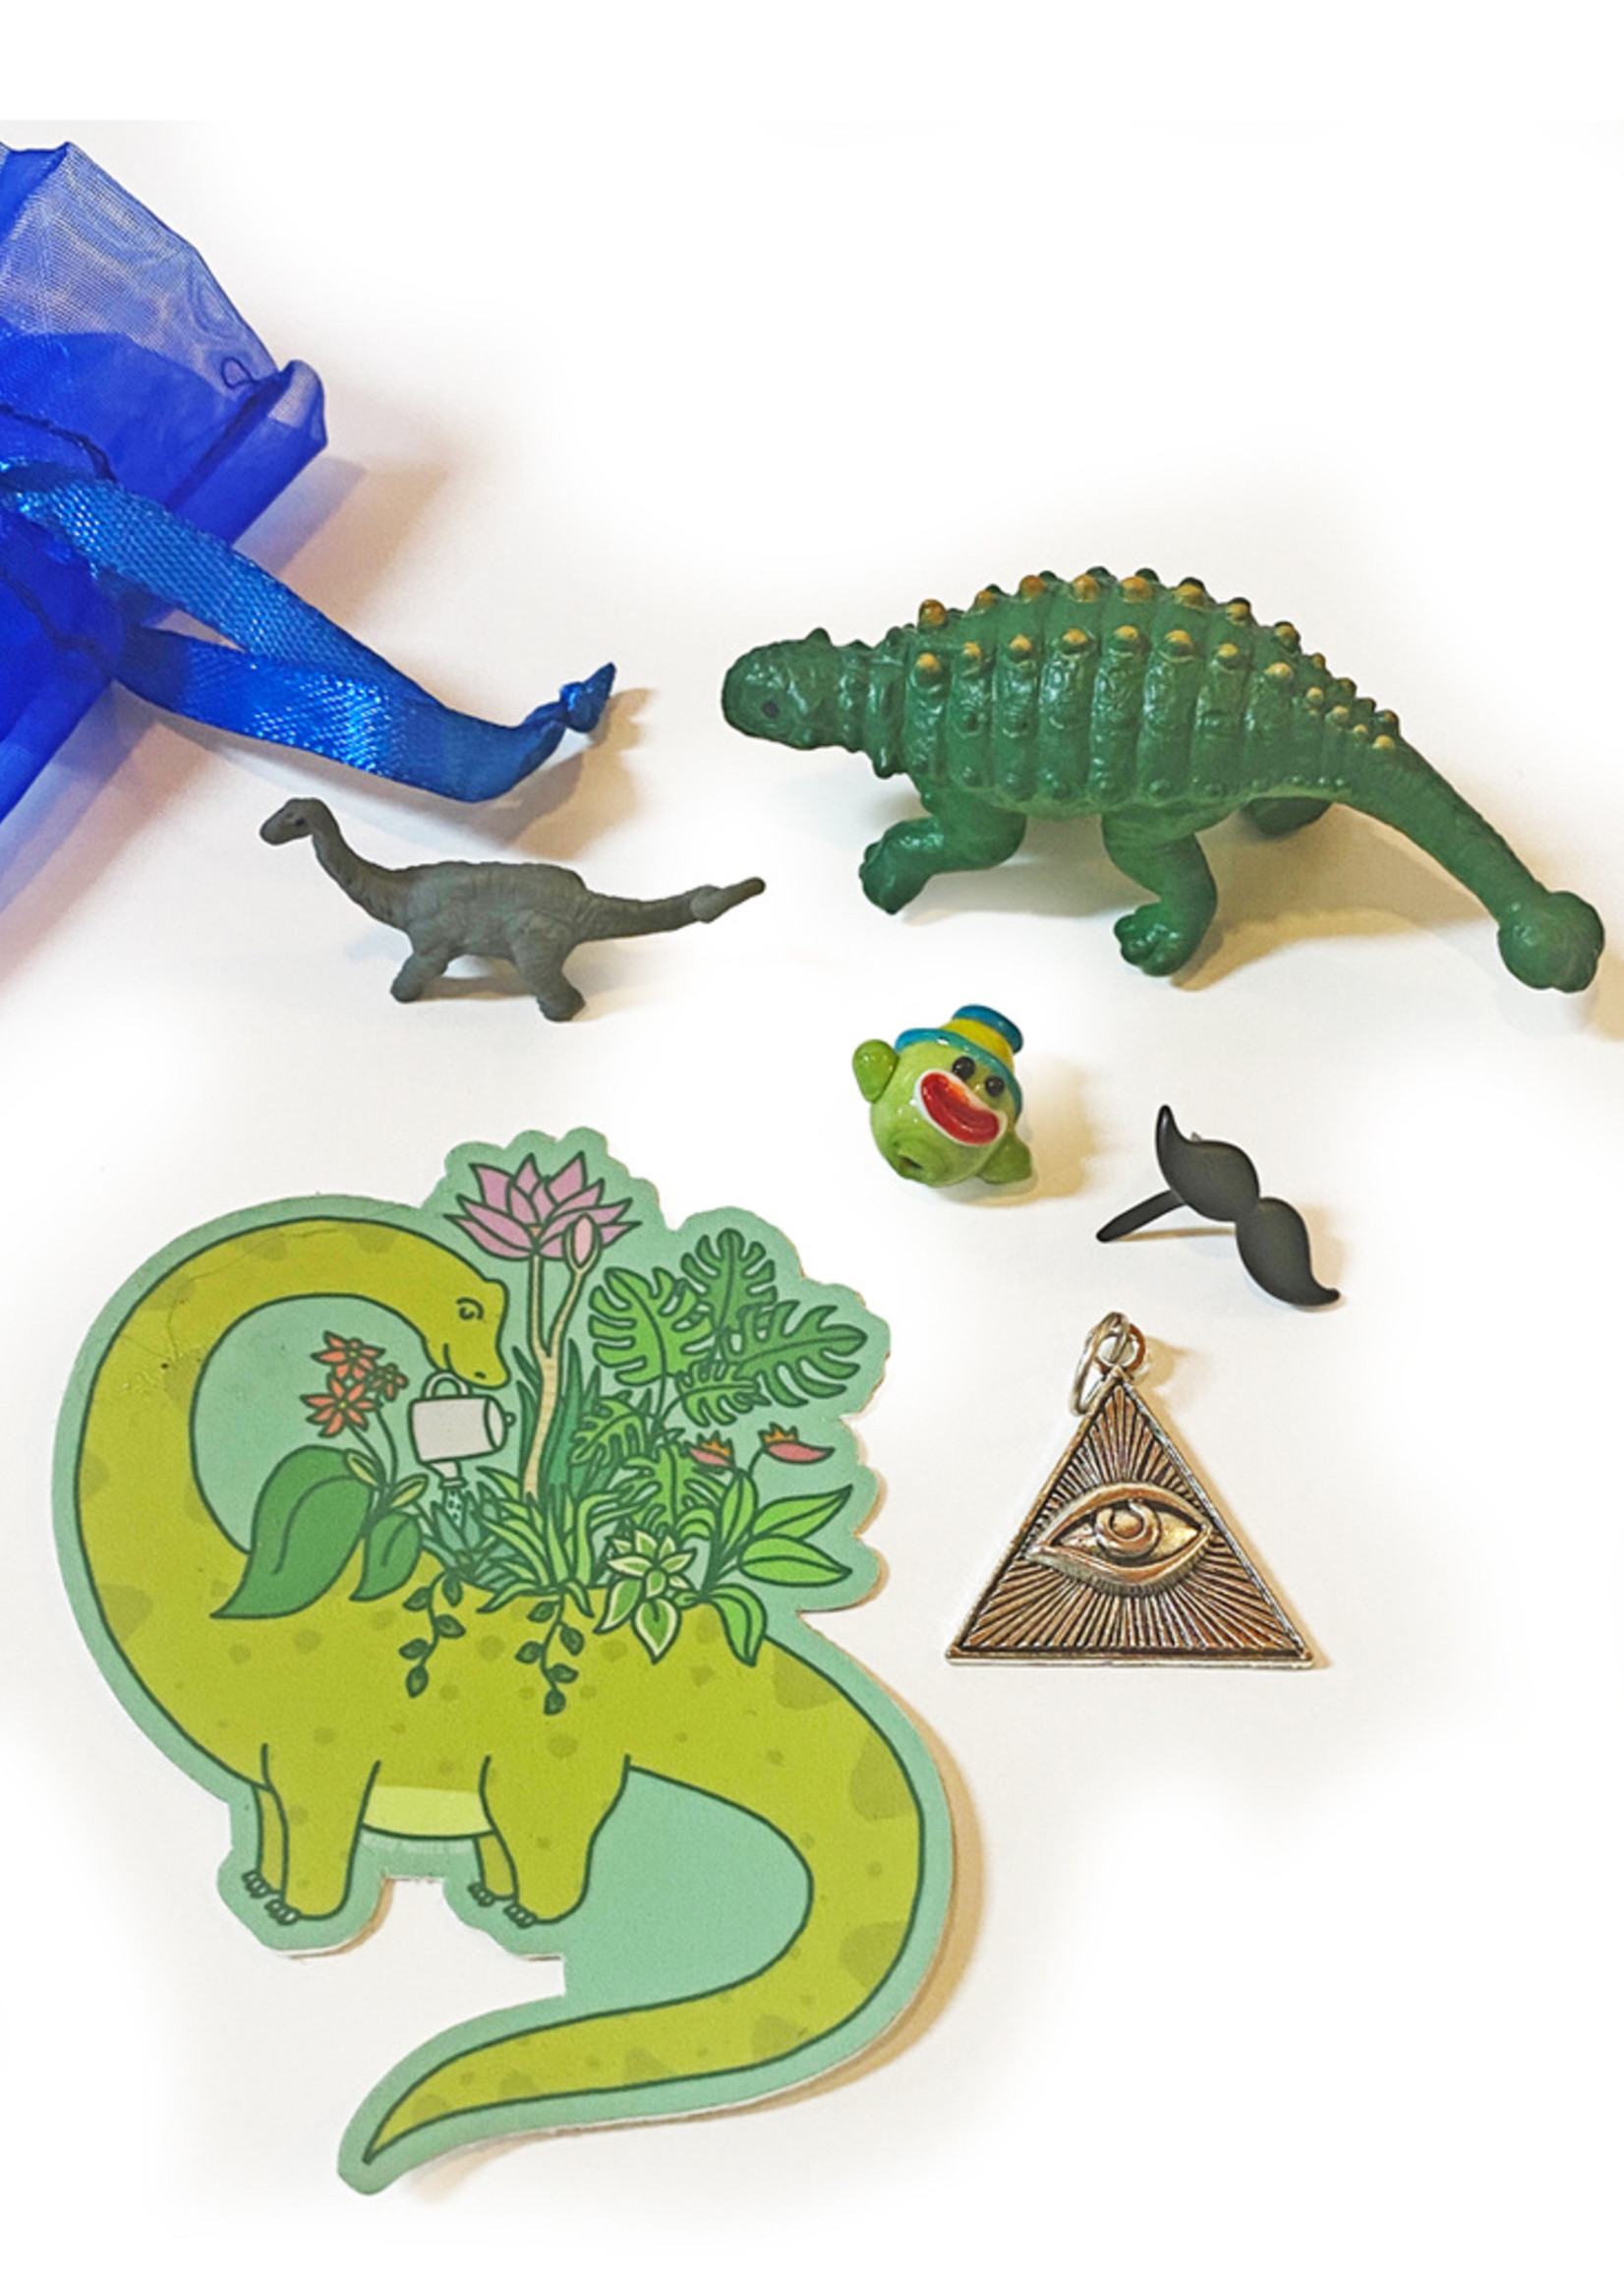 TreeHouse Book Kit - Mystery Museum Mindfulness 2021